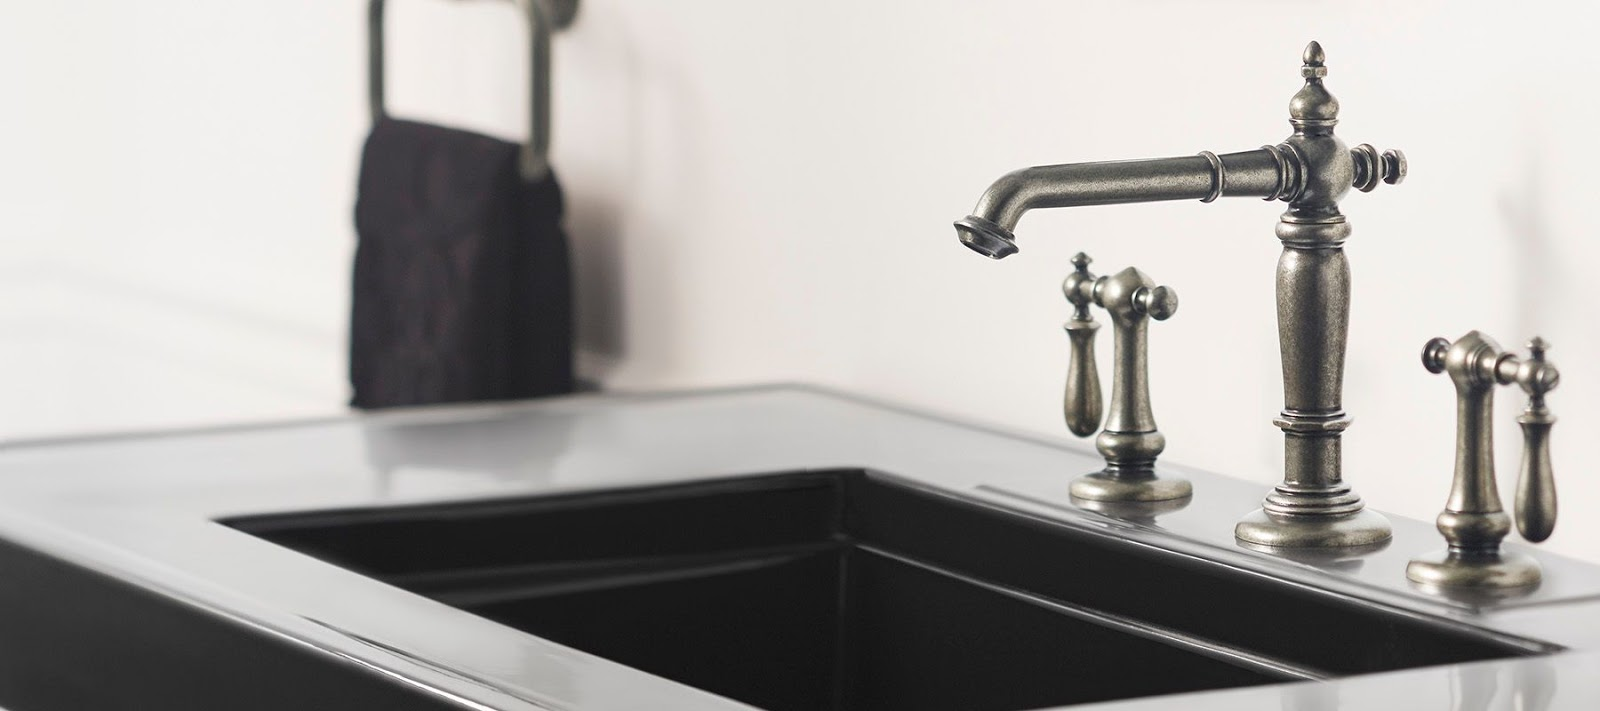 New Industry Reports: Global Faucet Industry Share and 2022 ...